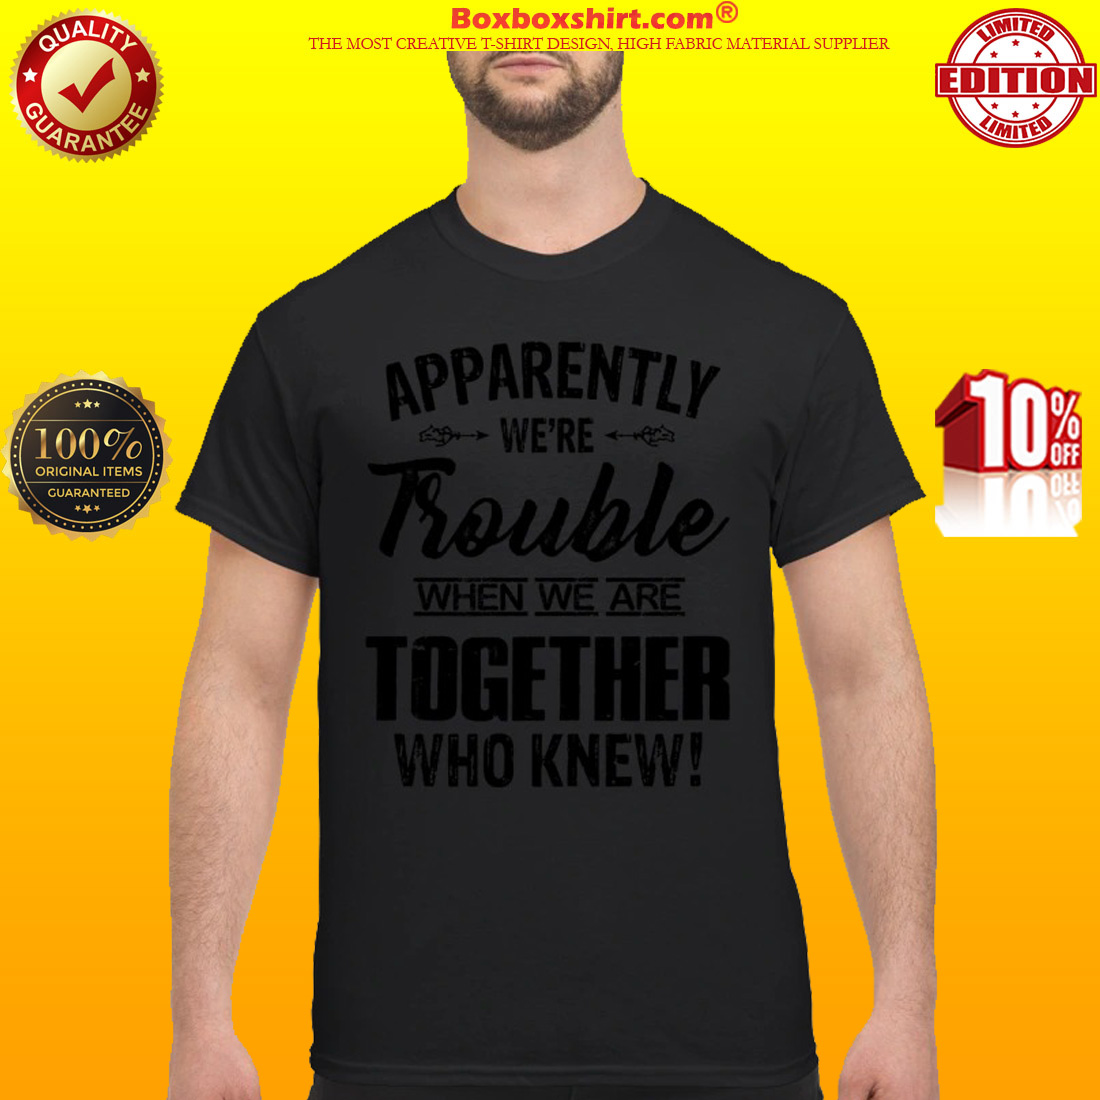 Apparently we're trouble when we are together who know classic shirt